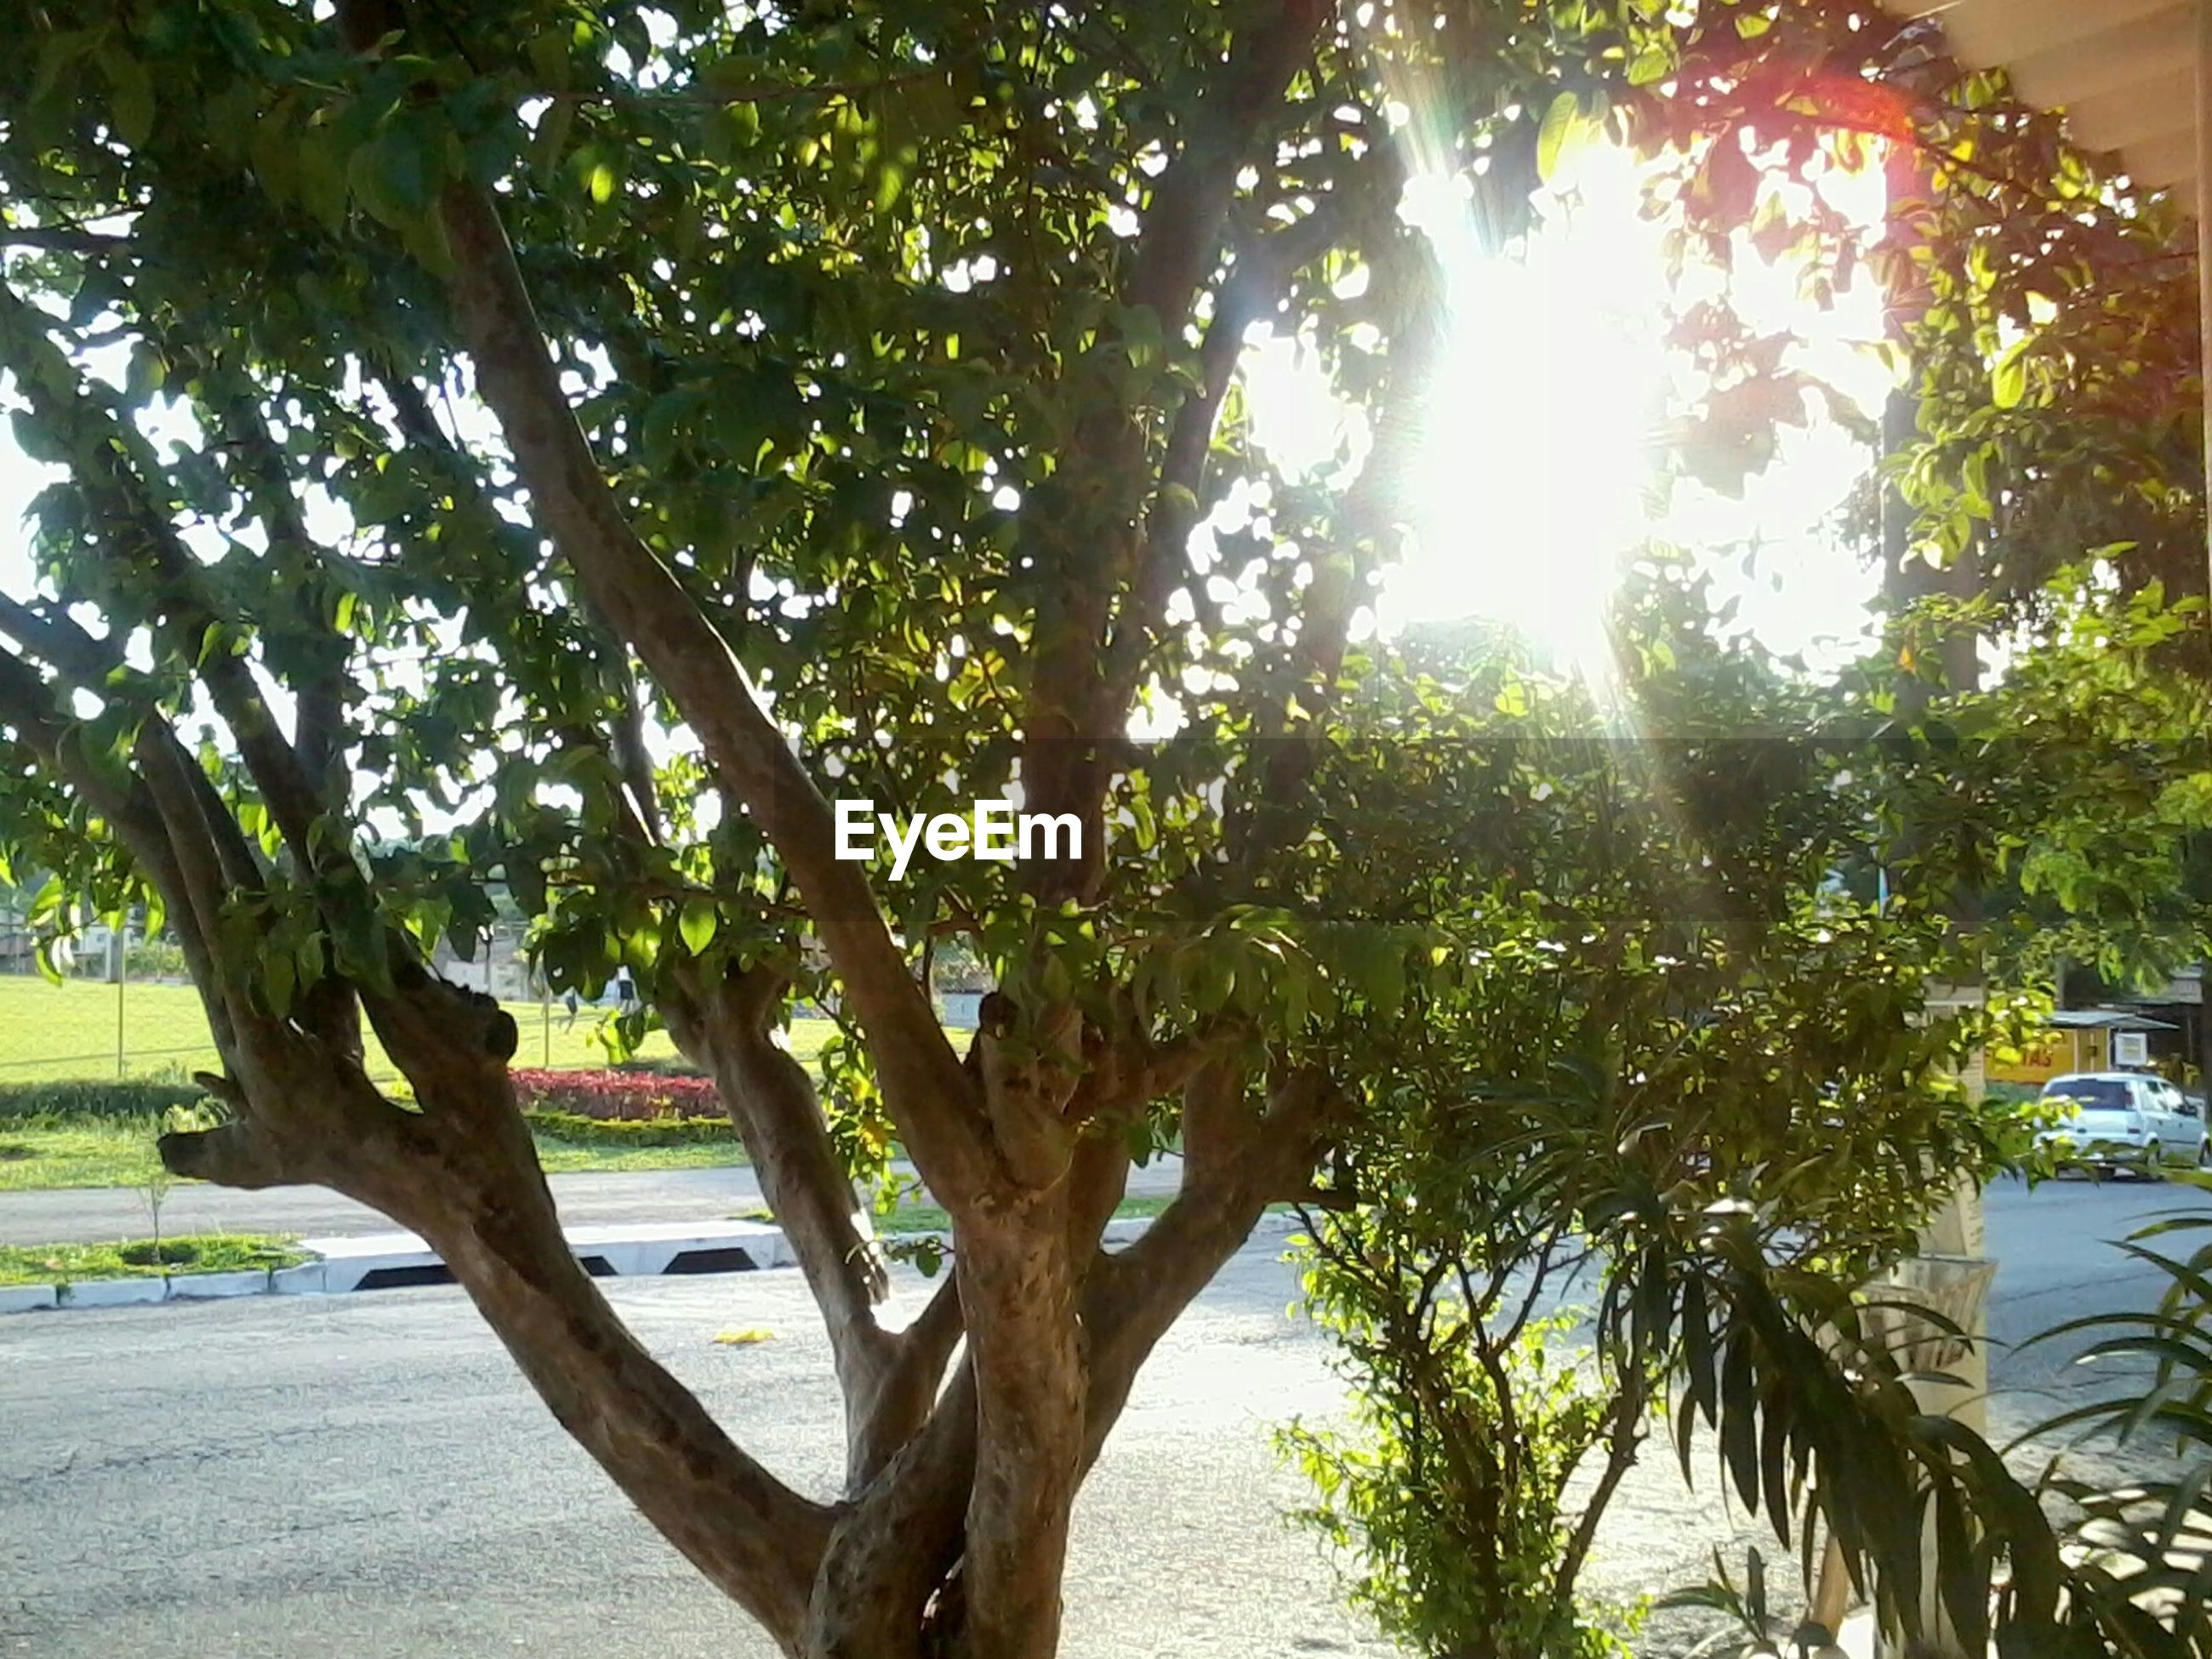 tree, sunlight, sun, tree trunk, growth, tranquility, nature, tranquil scene, sunbeam, beauty in nature, water, scenics, palm tree, branch, sky, lens flare, sunny, green color, shadow, day